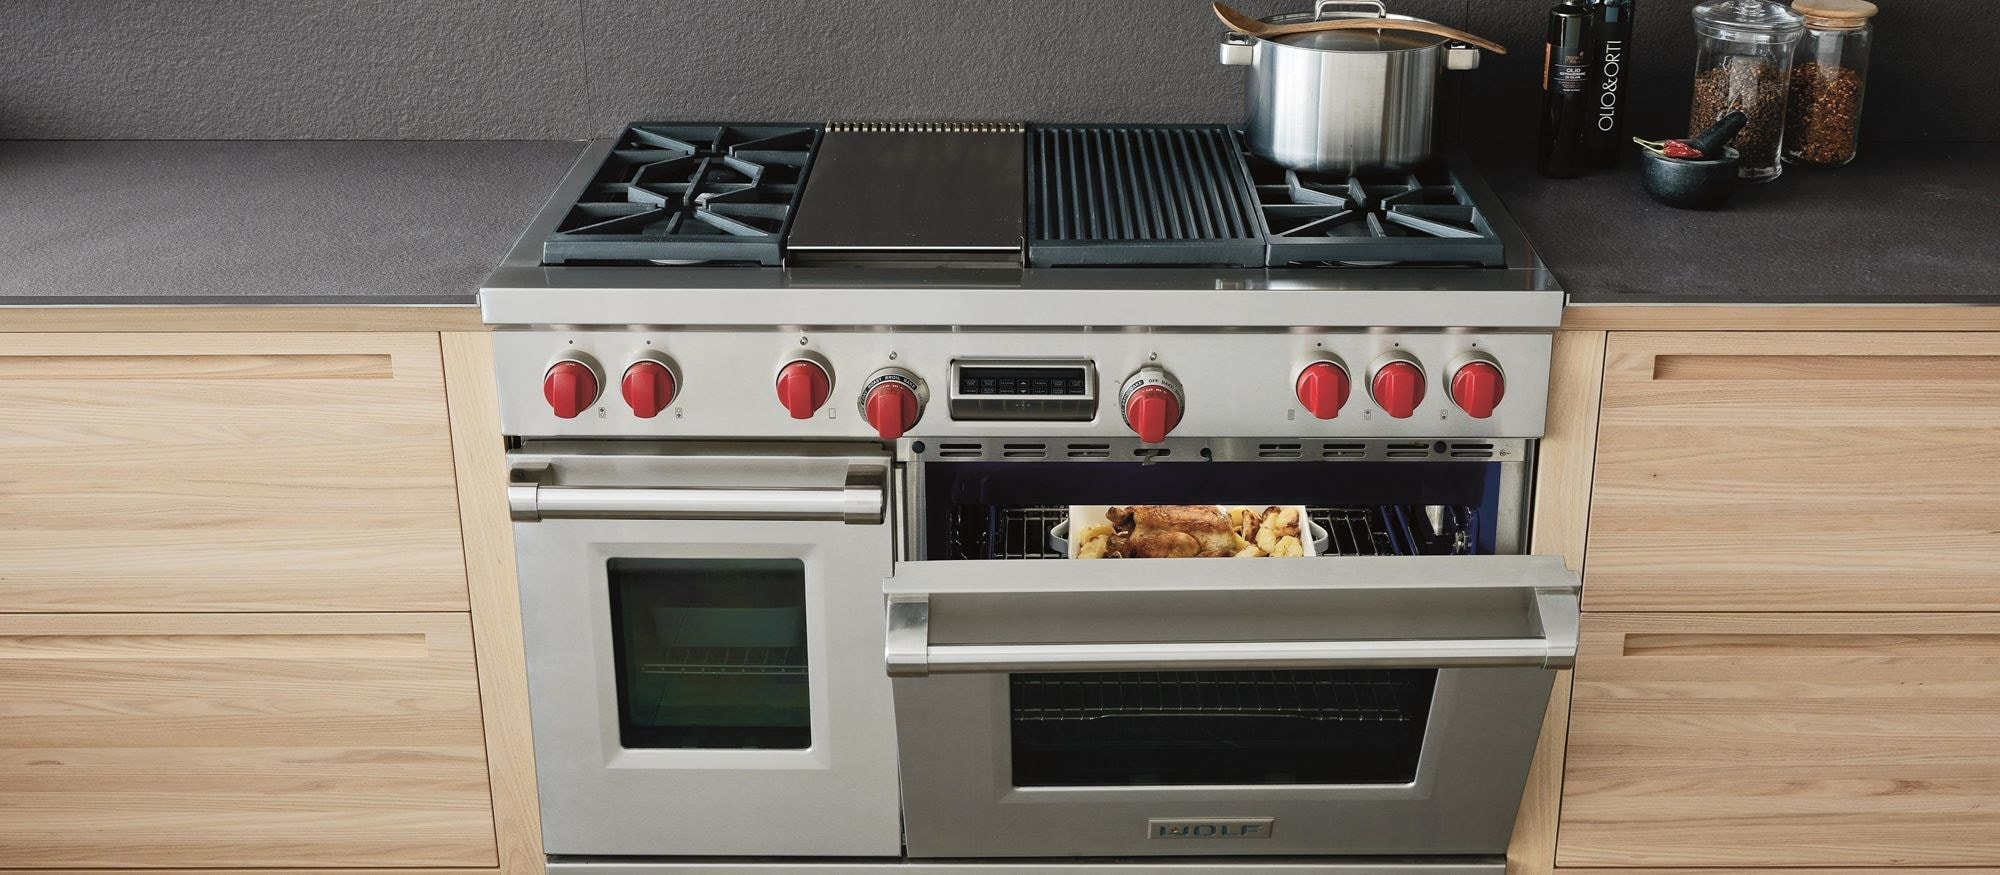 48 Dual Fuel Range 4 Burners Infrared Charbroiler And Griddle